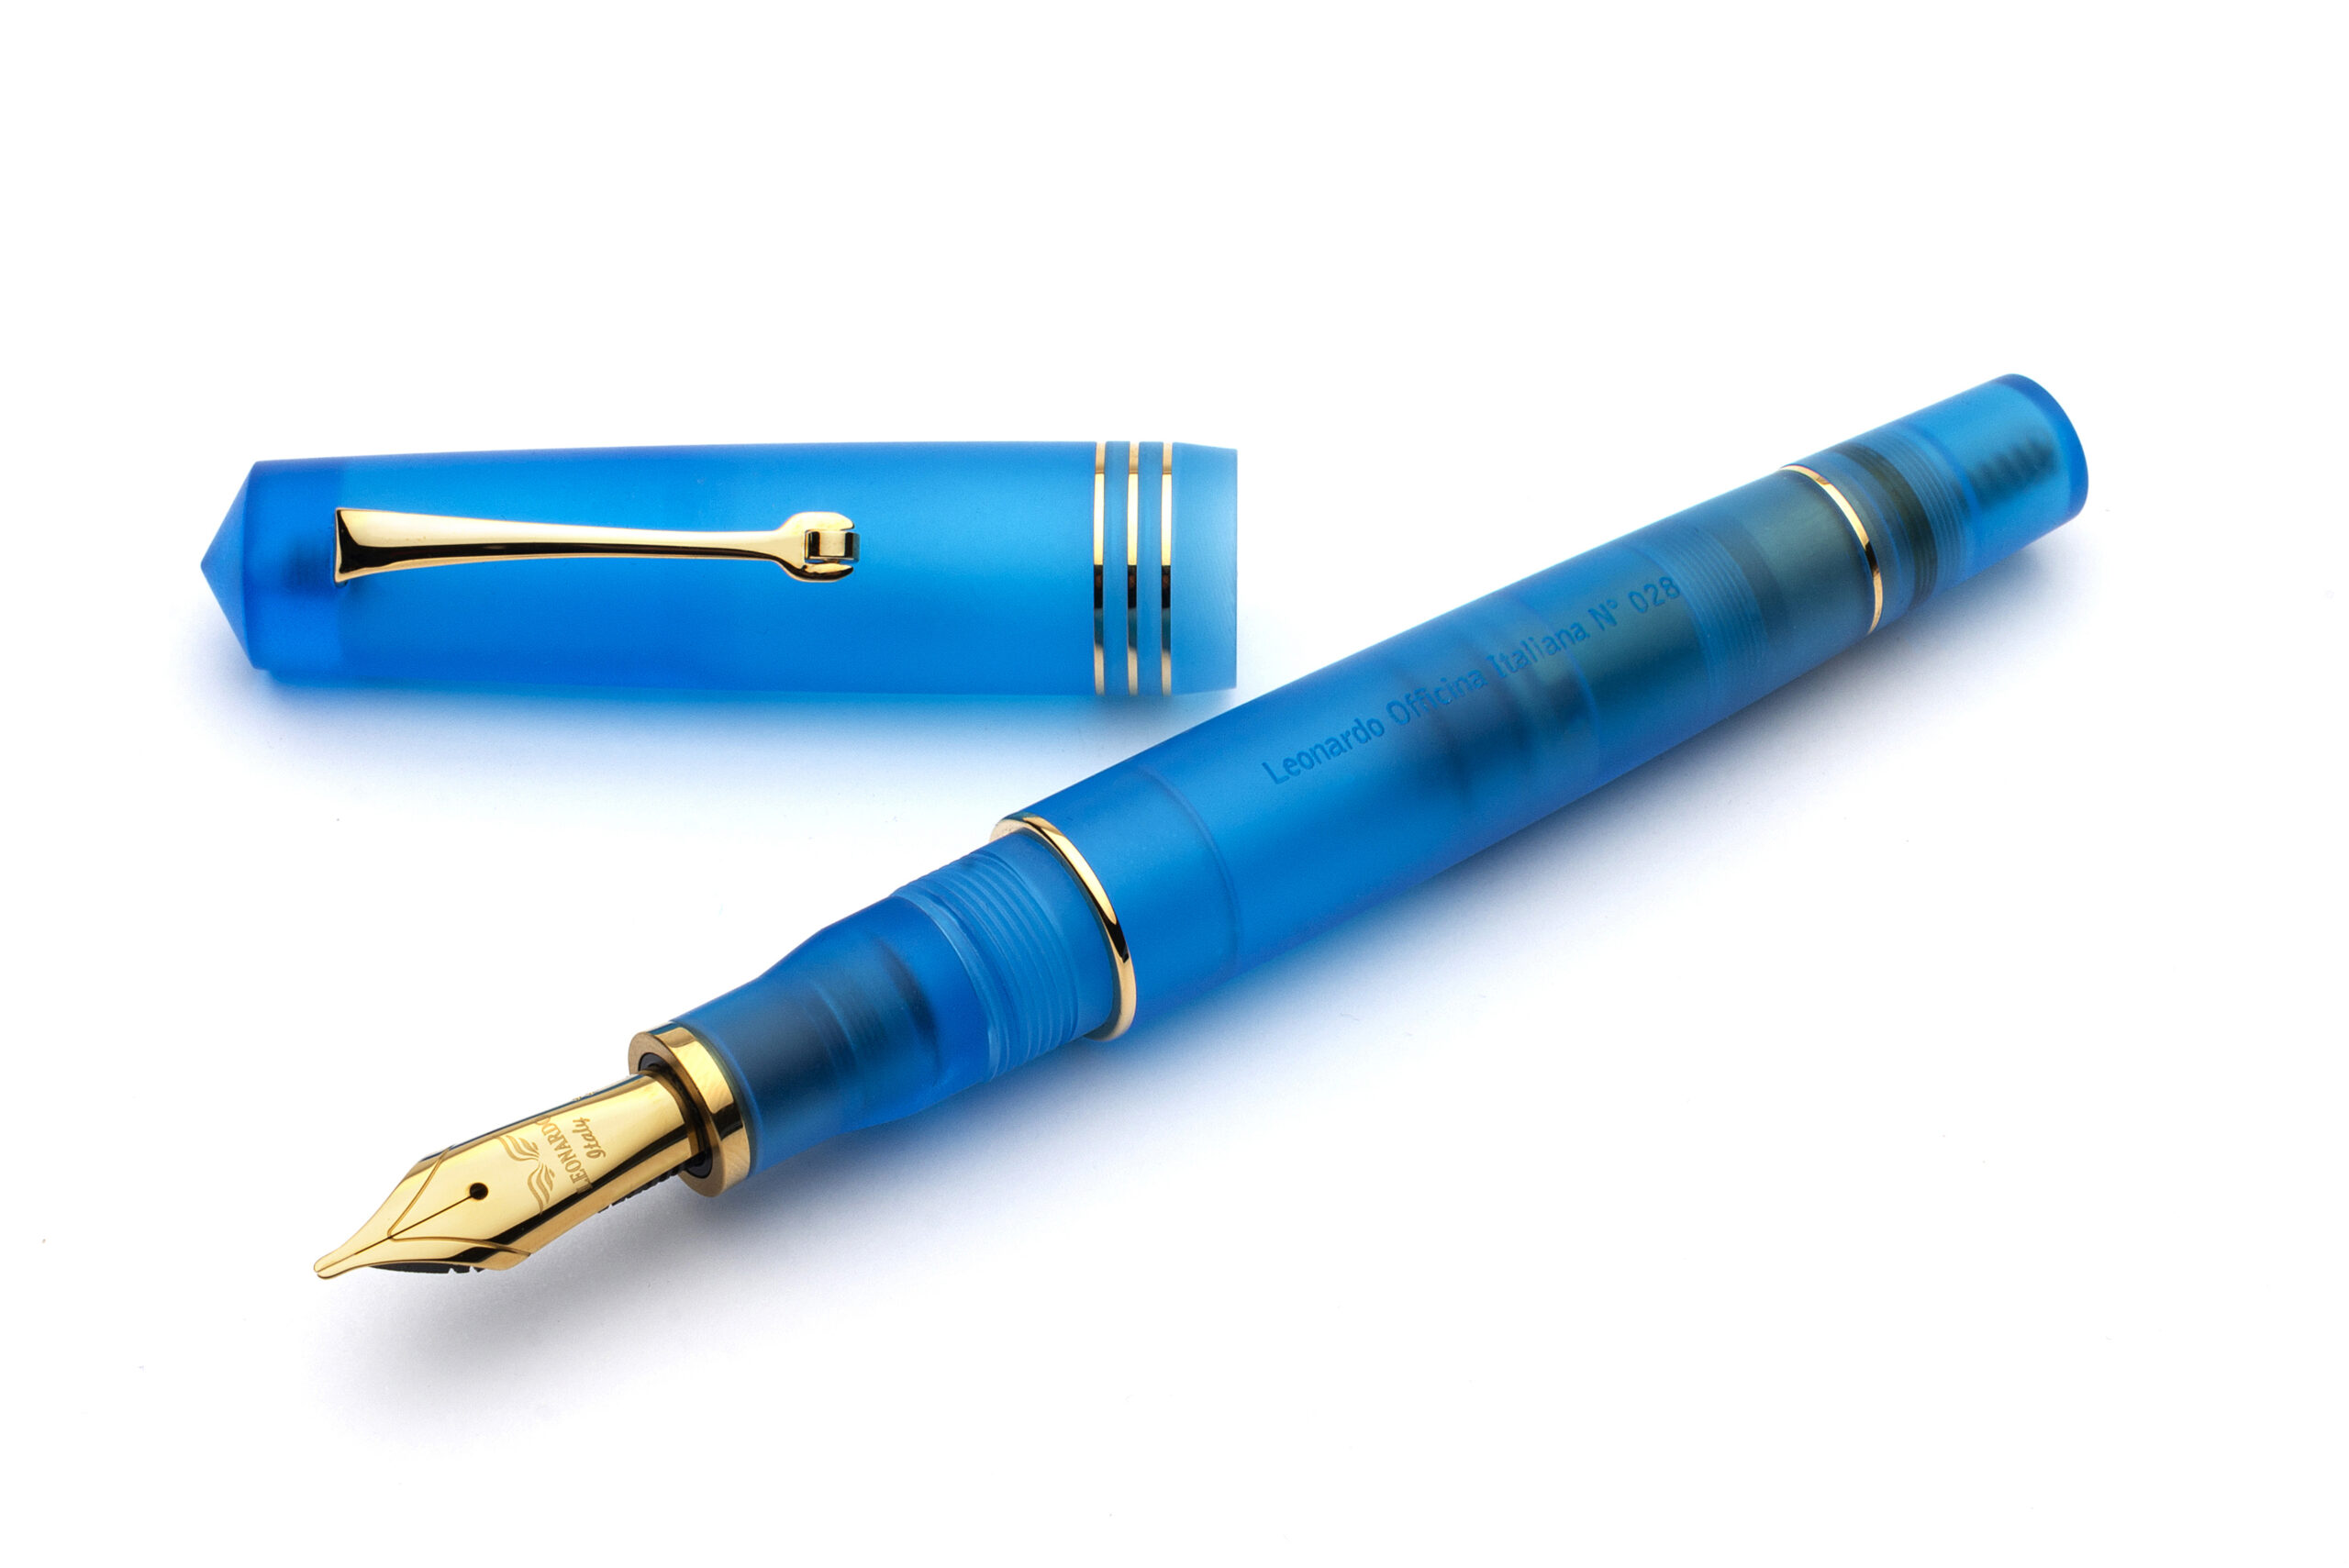 Fine Point Kaweco Sport Transparent Fountain Pen in Classic Blue with Gold Trim